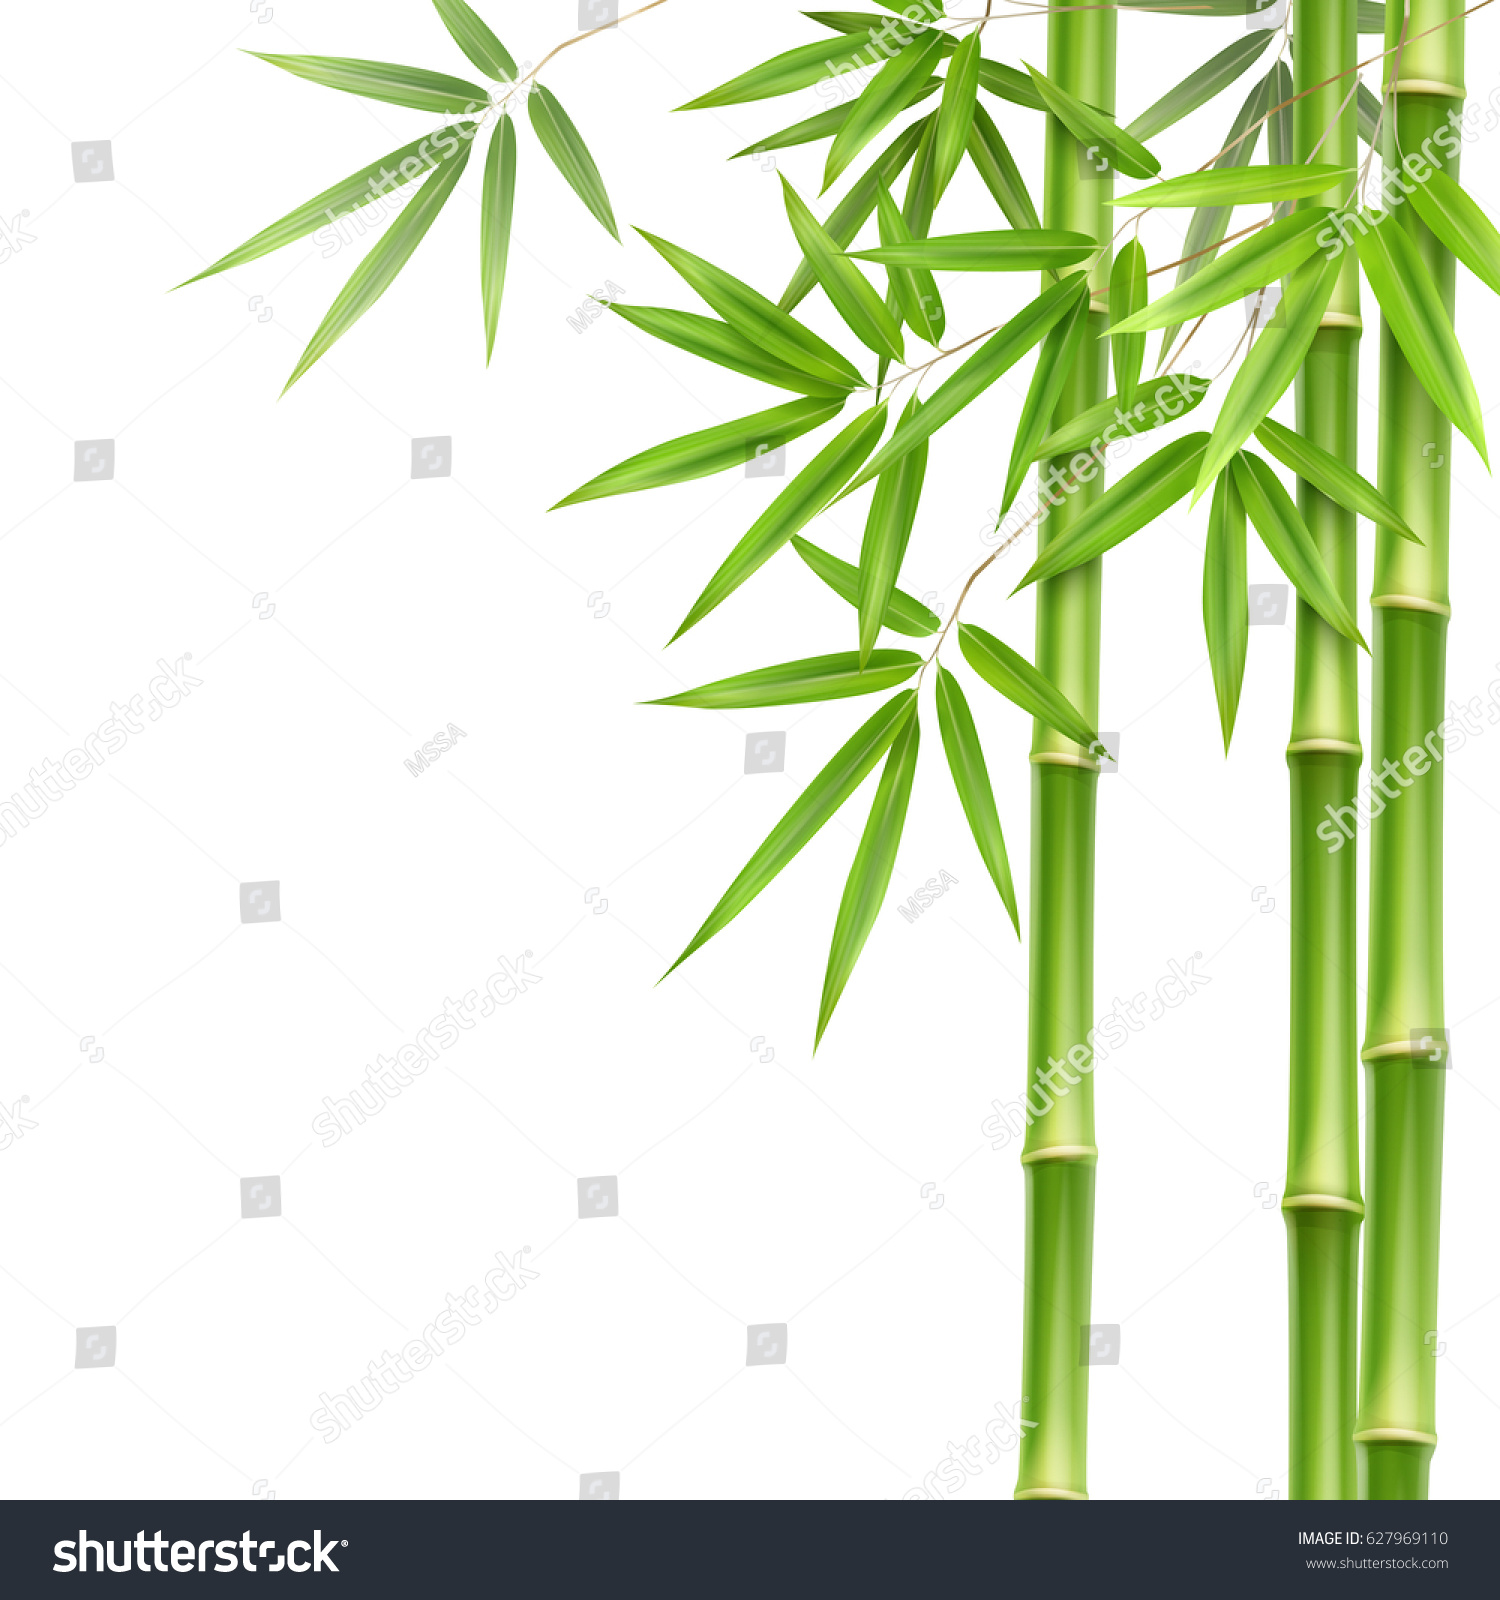 Vector Green Bamboo Stems Leaves Isolated Stock Vector 627969110 ...